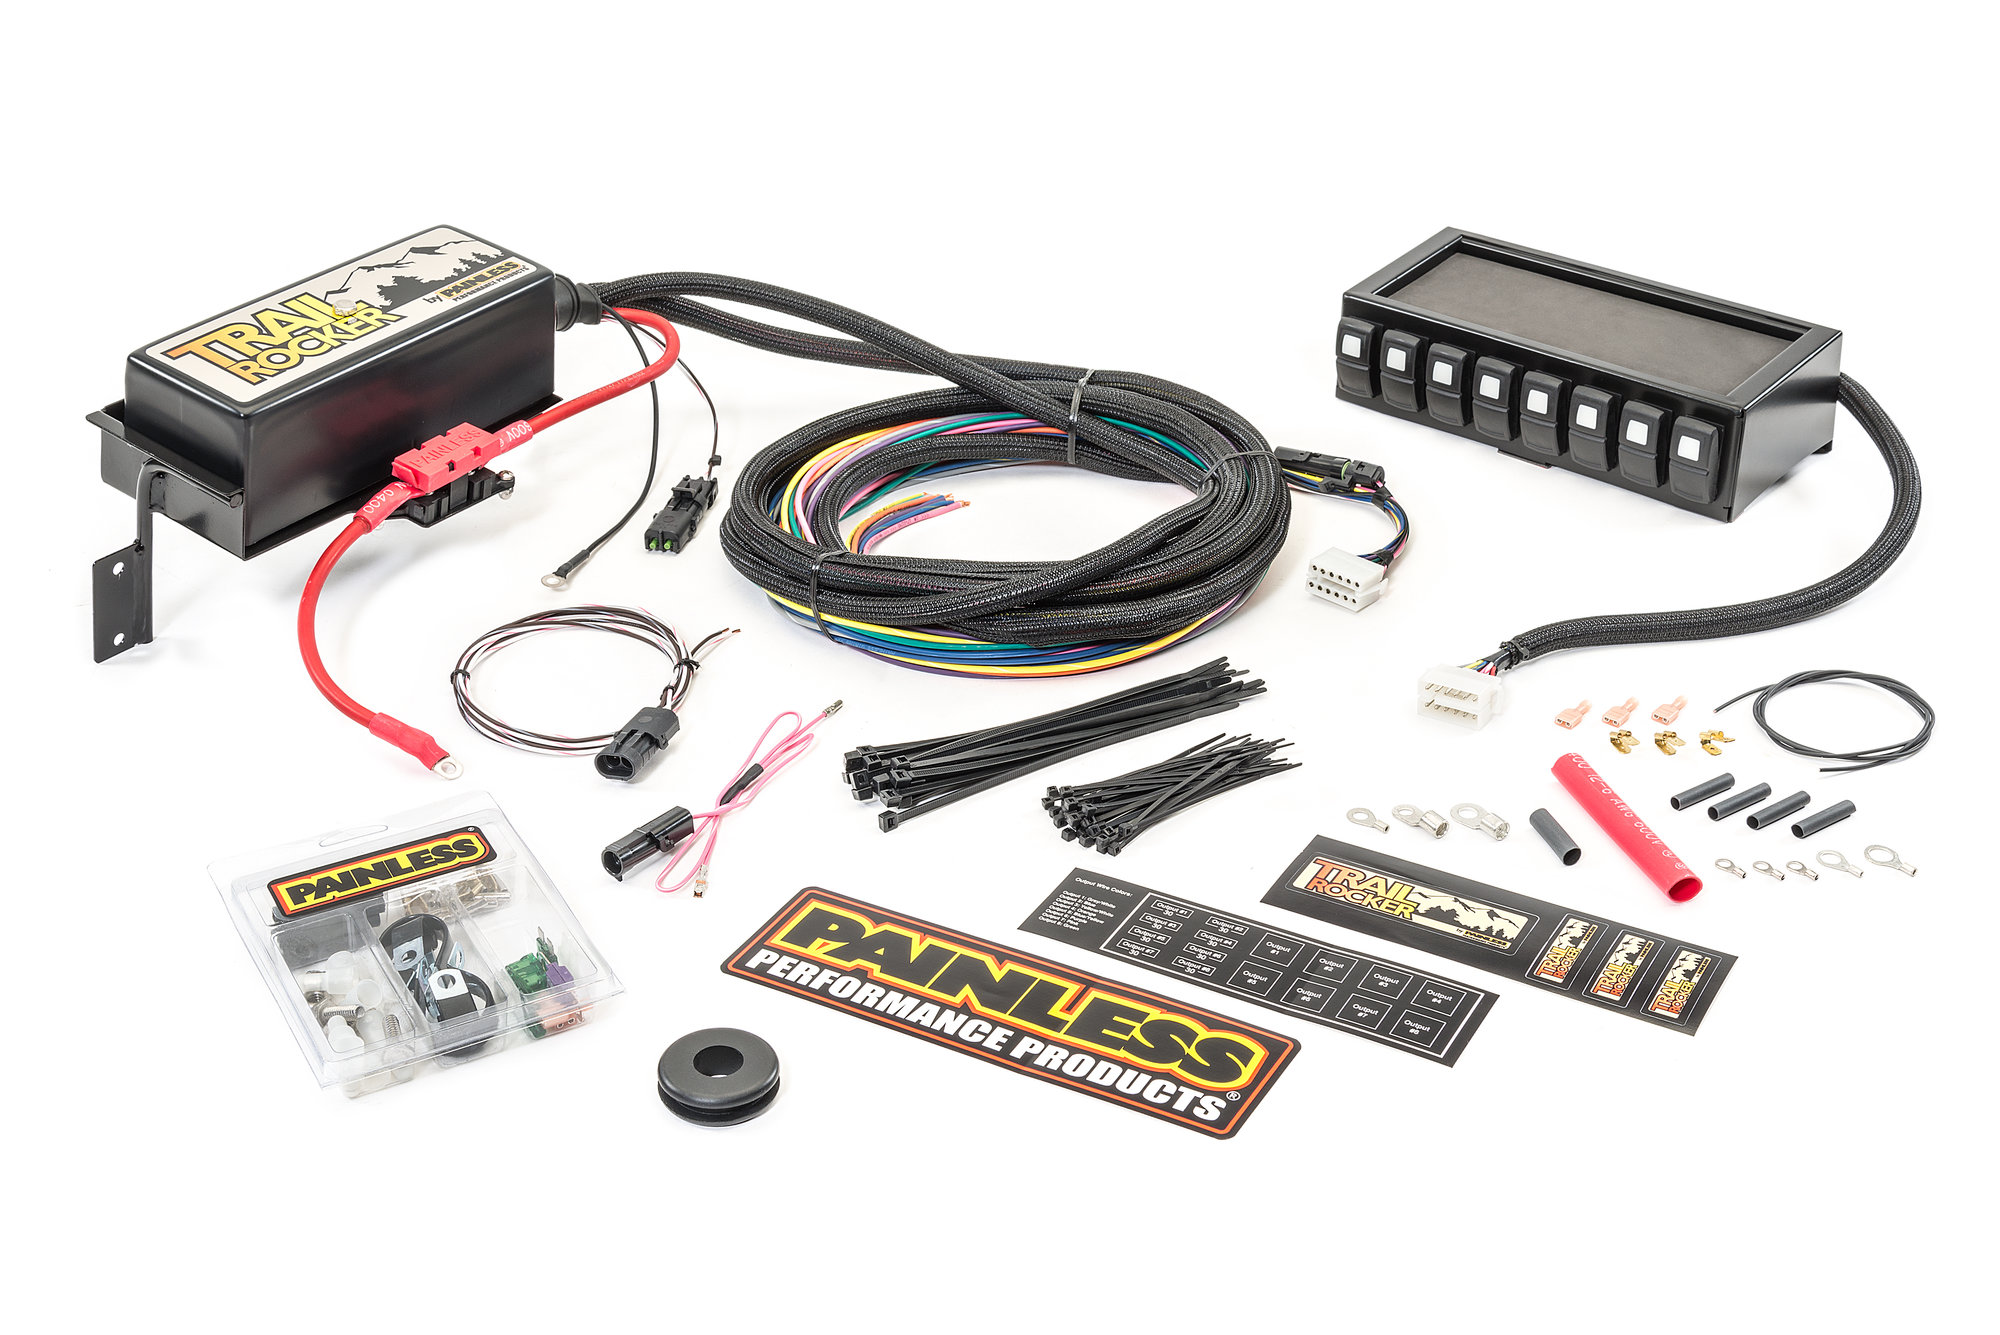 hight resolution of painless wiring 57040 trail rocker system with dash mounted panel painless wiring jeep cj7 painless wiring